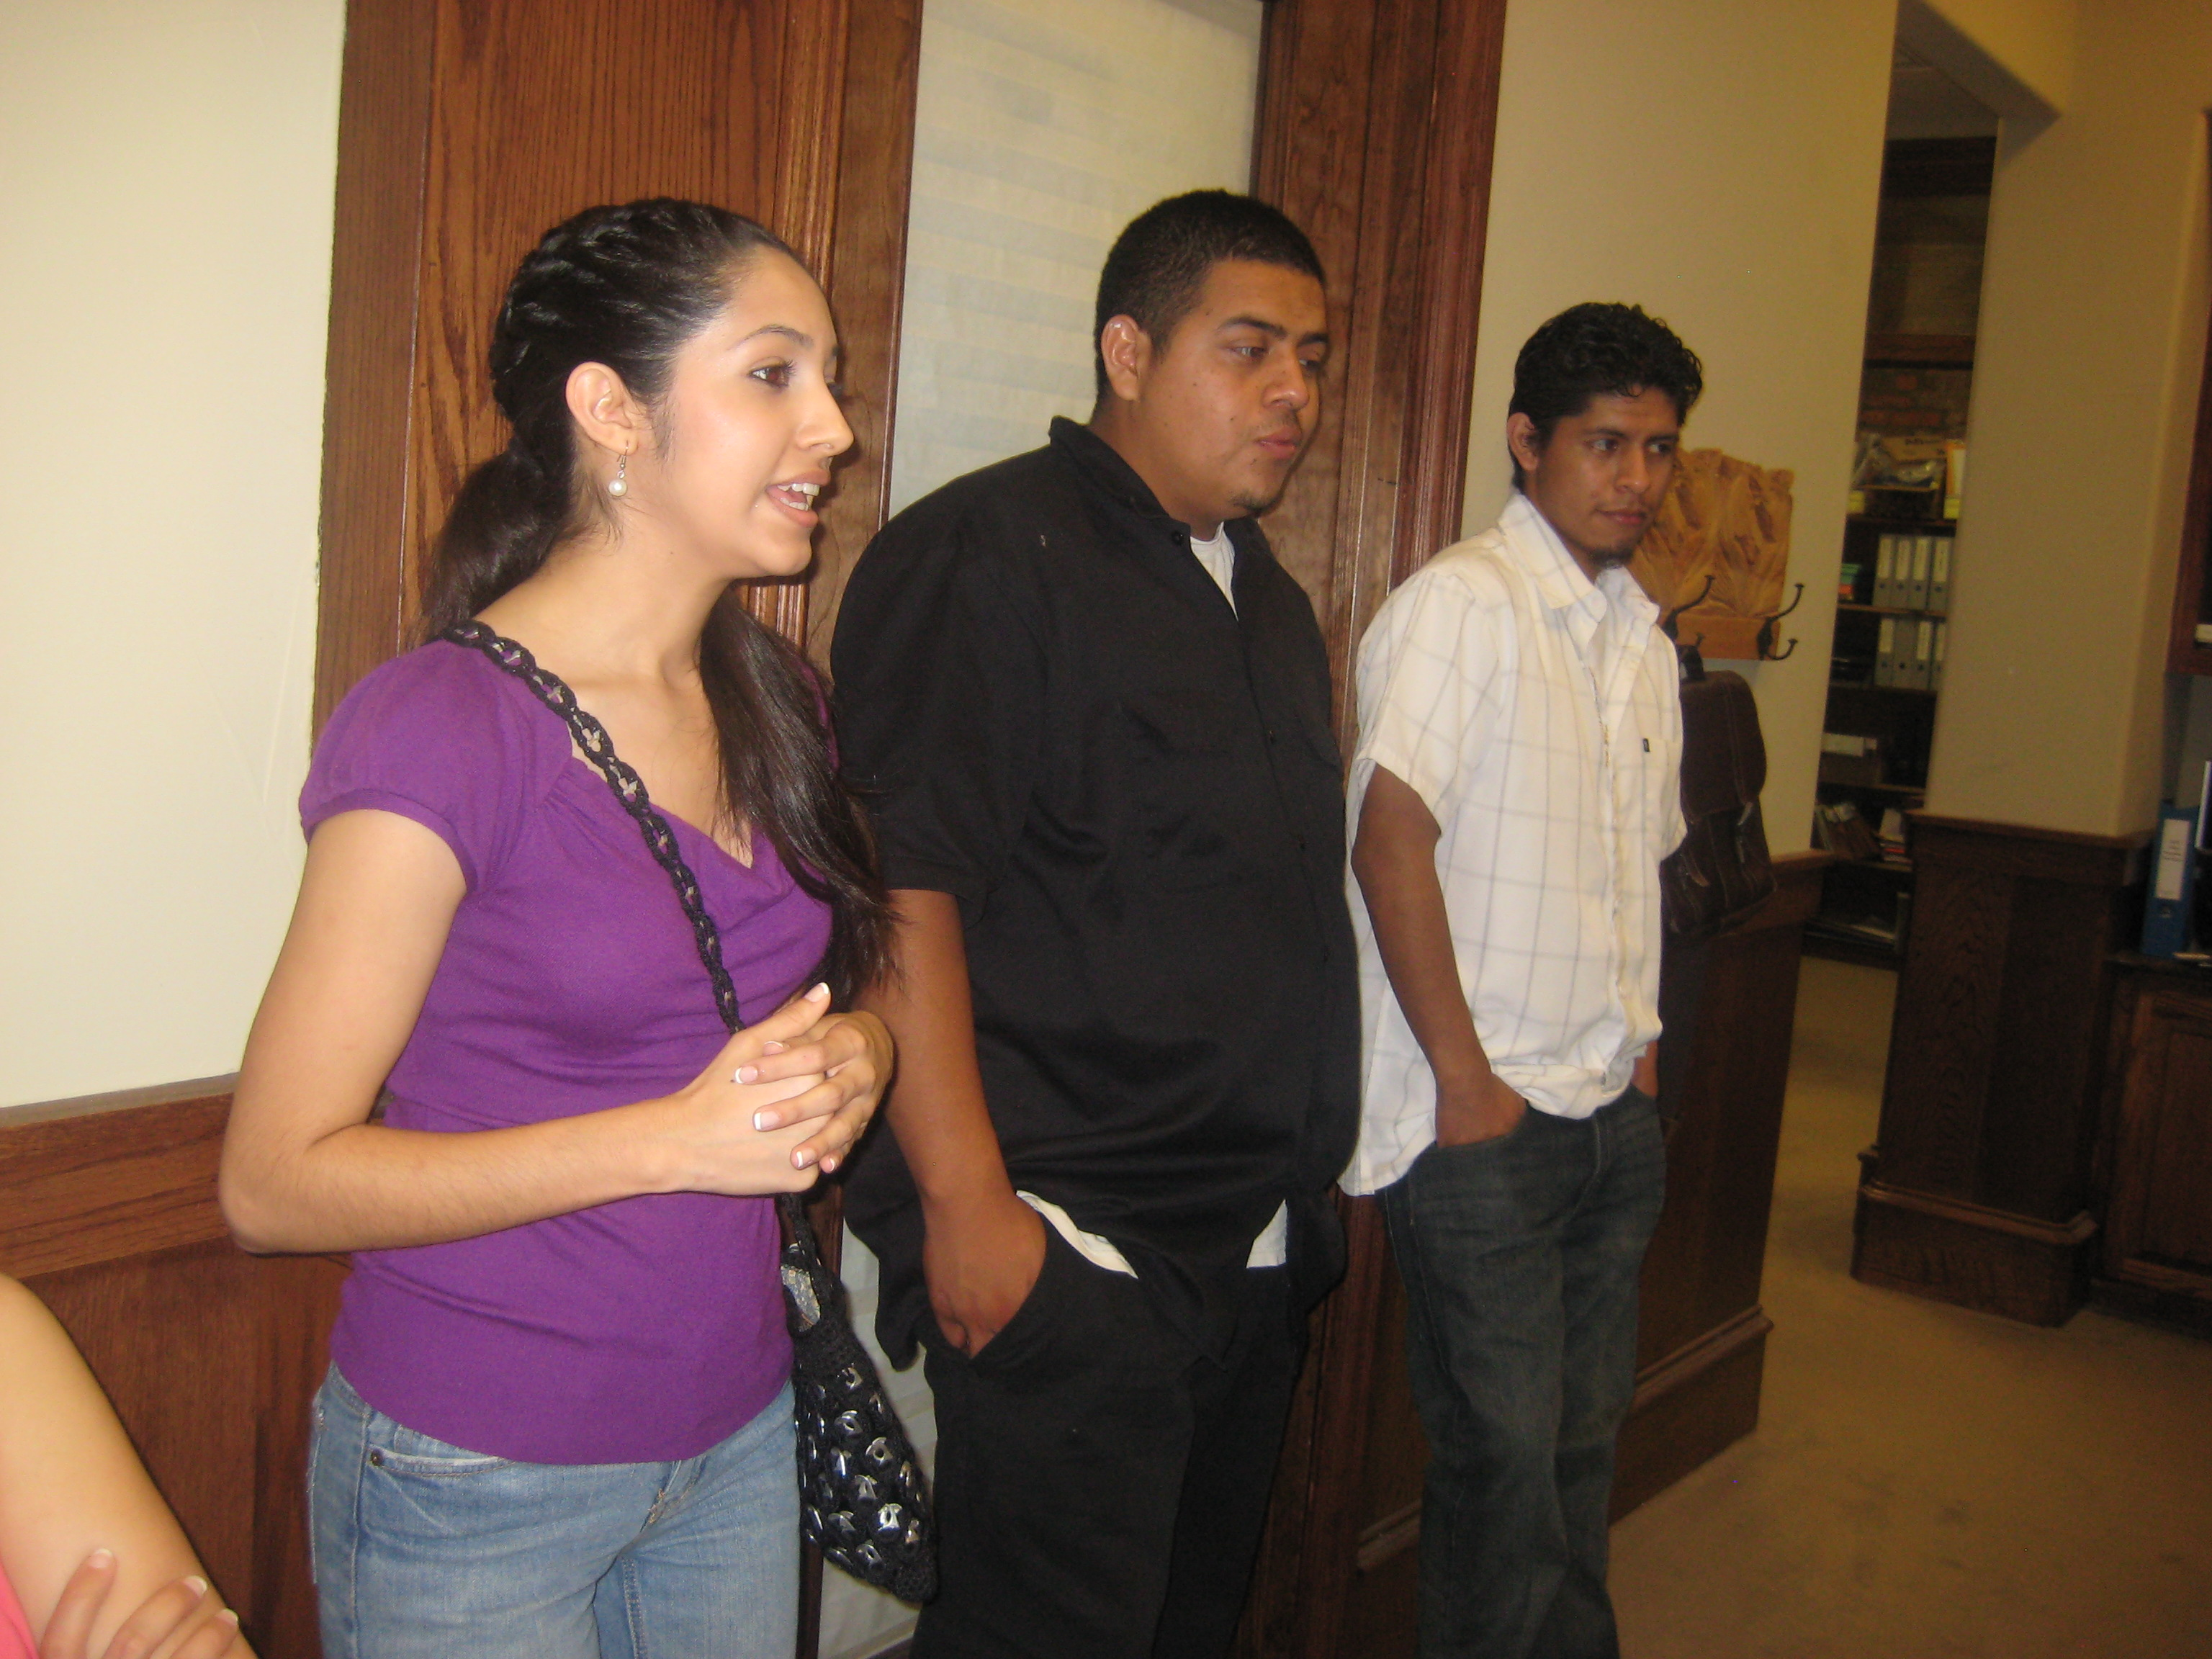 Grecia, Daniel and Luis after the announcement